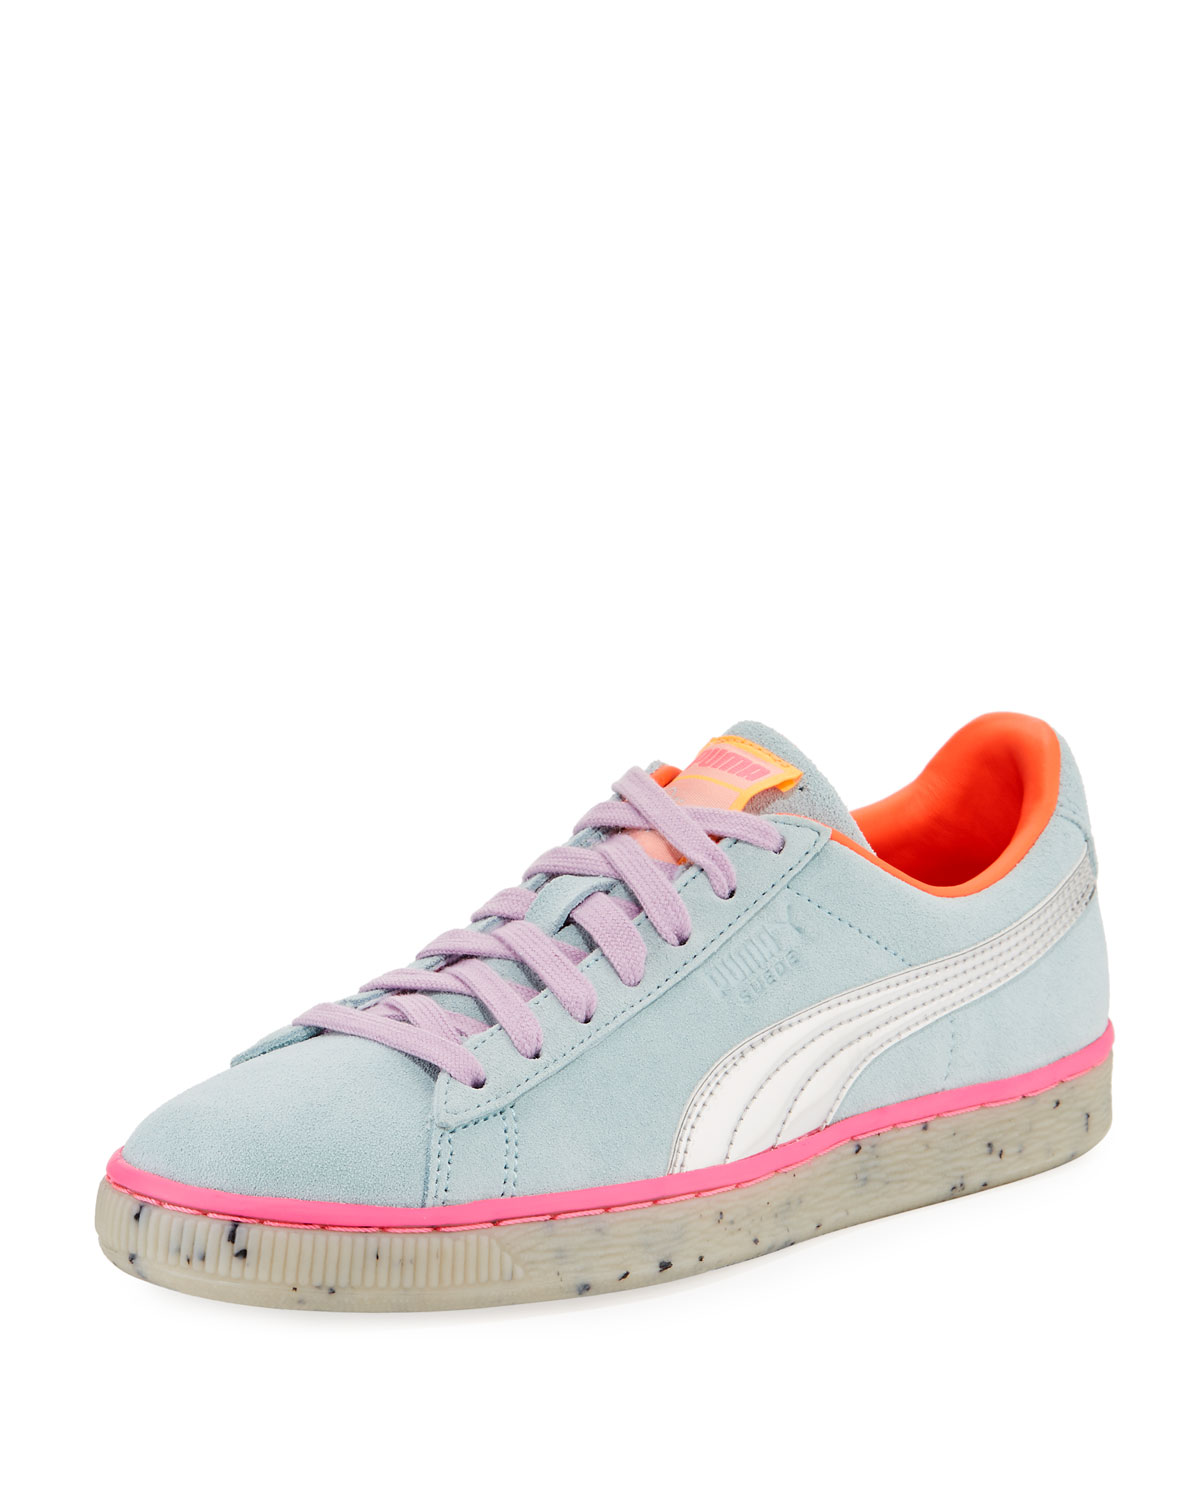 Puma x Sophia Webster Candy Princess Suede Sneakers  9756bf141